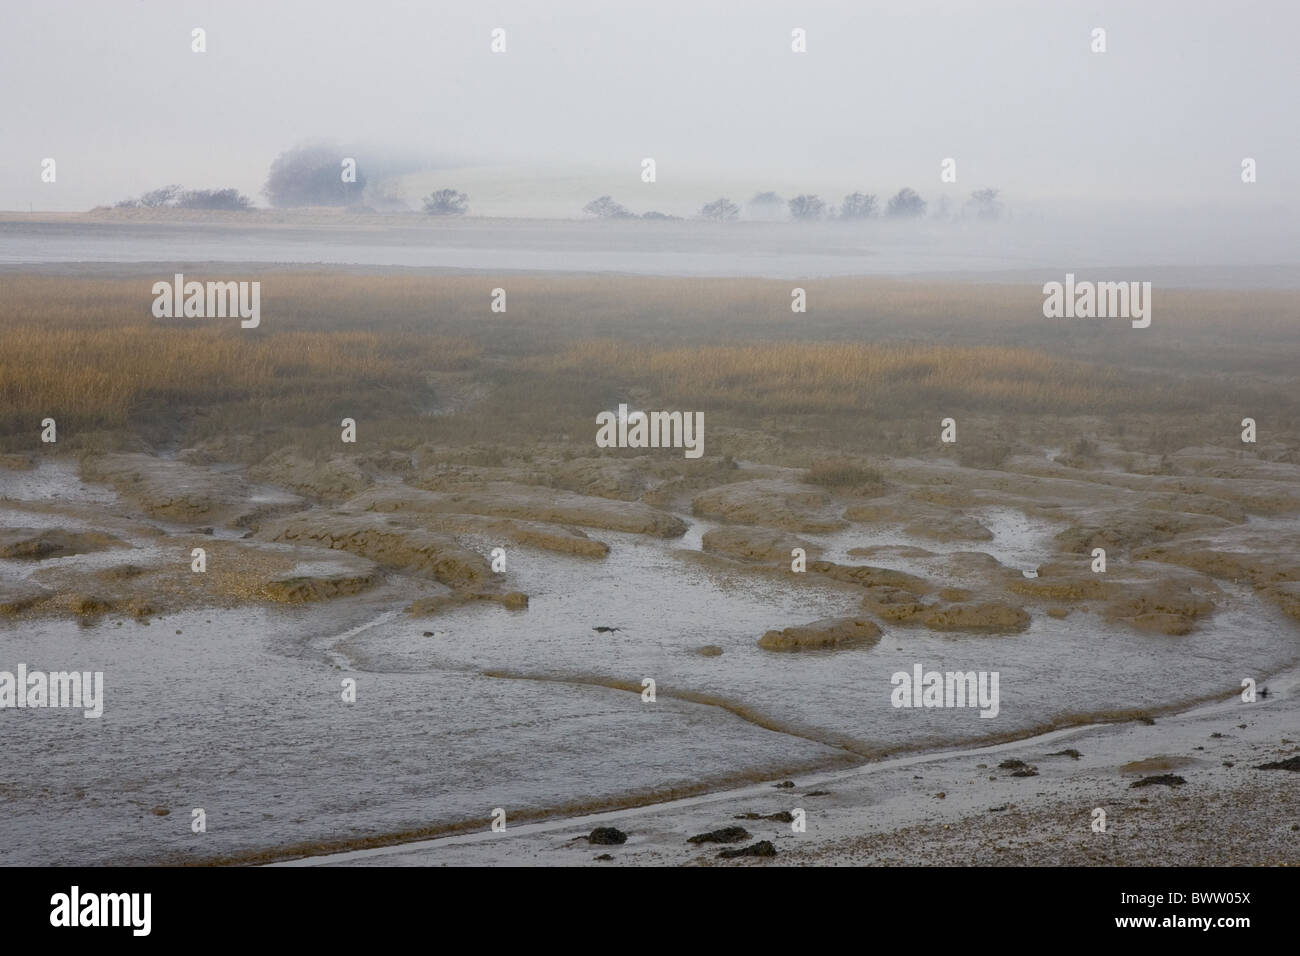 Early morning view of misty saltmarsh habitat, Levington Lagoon ...